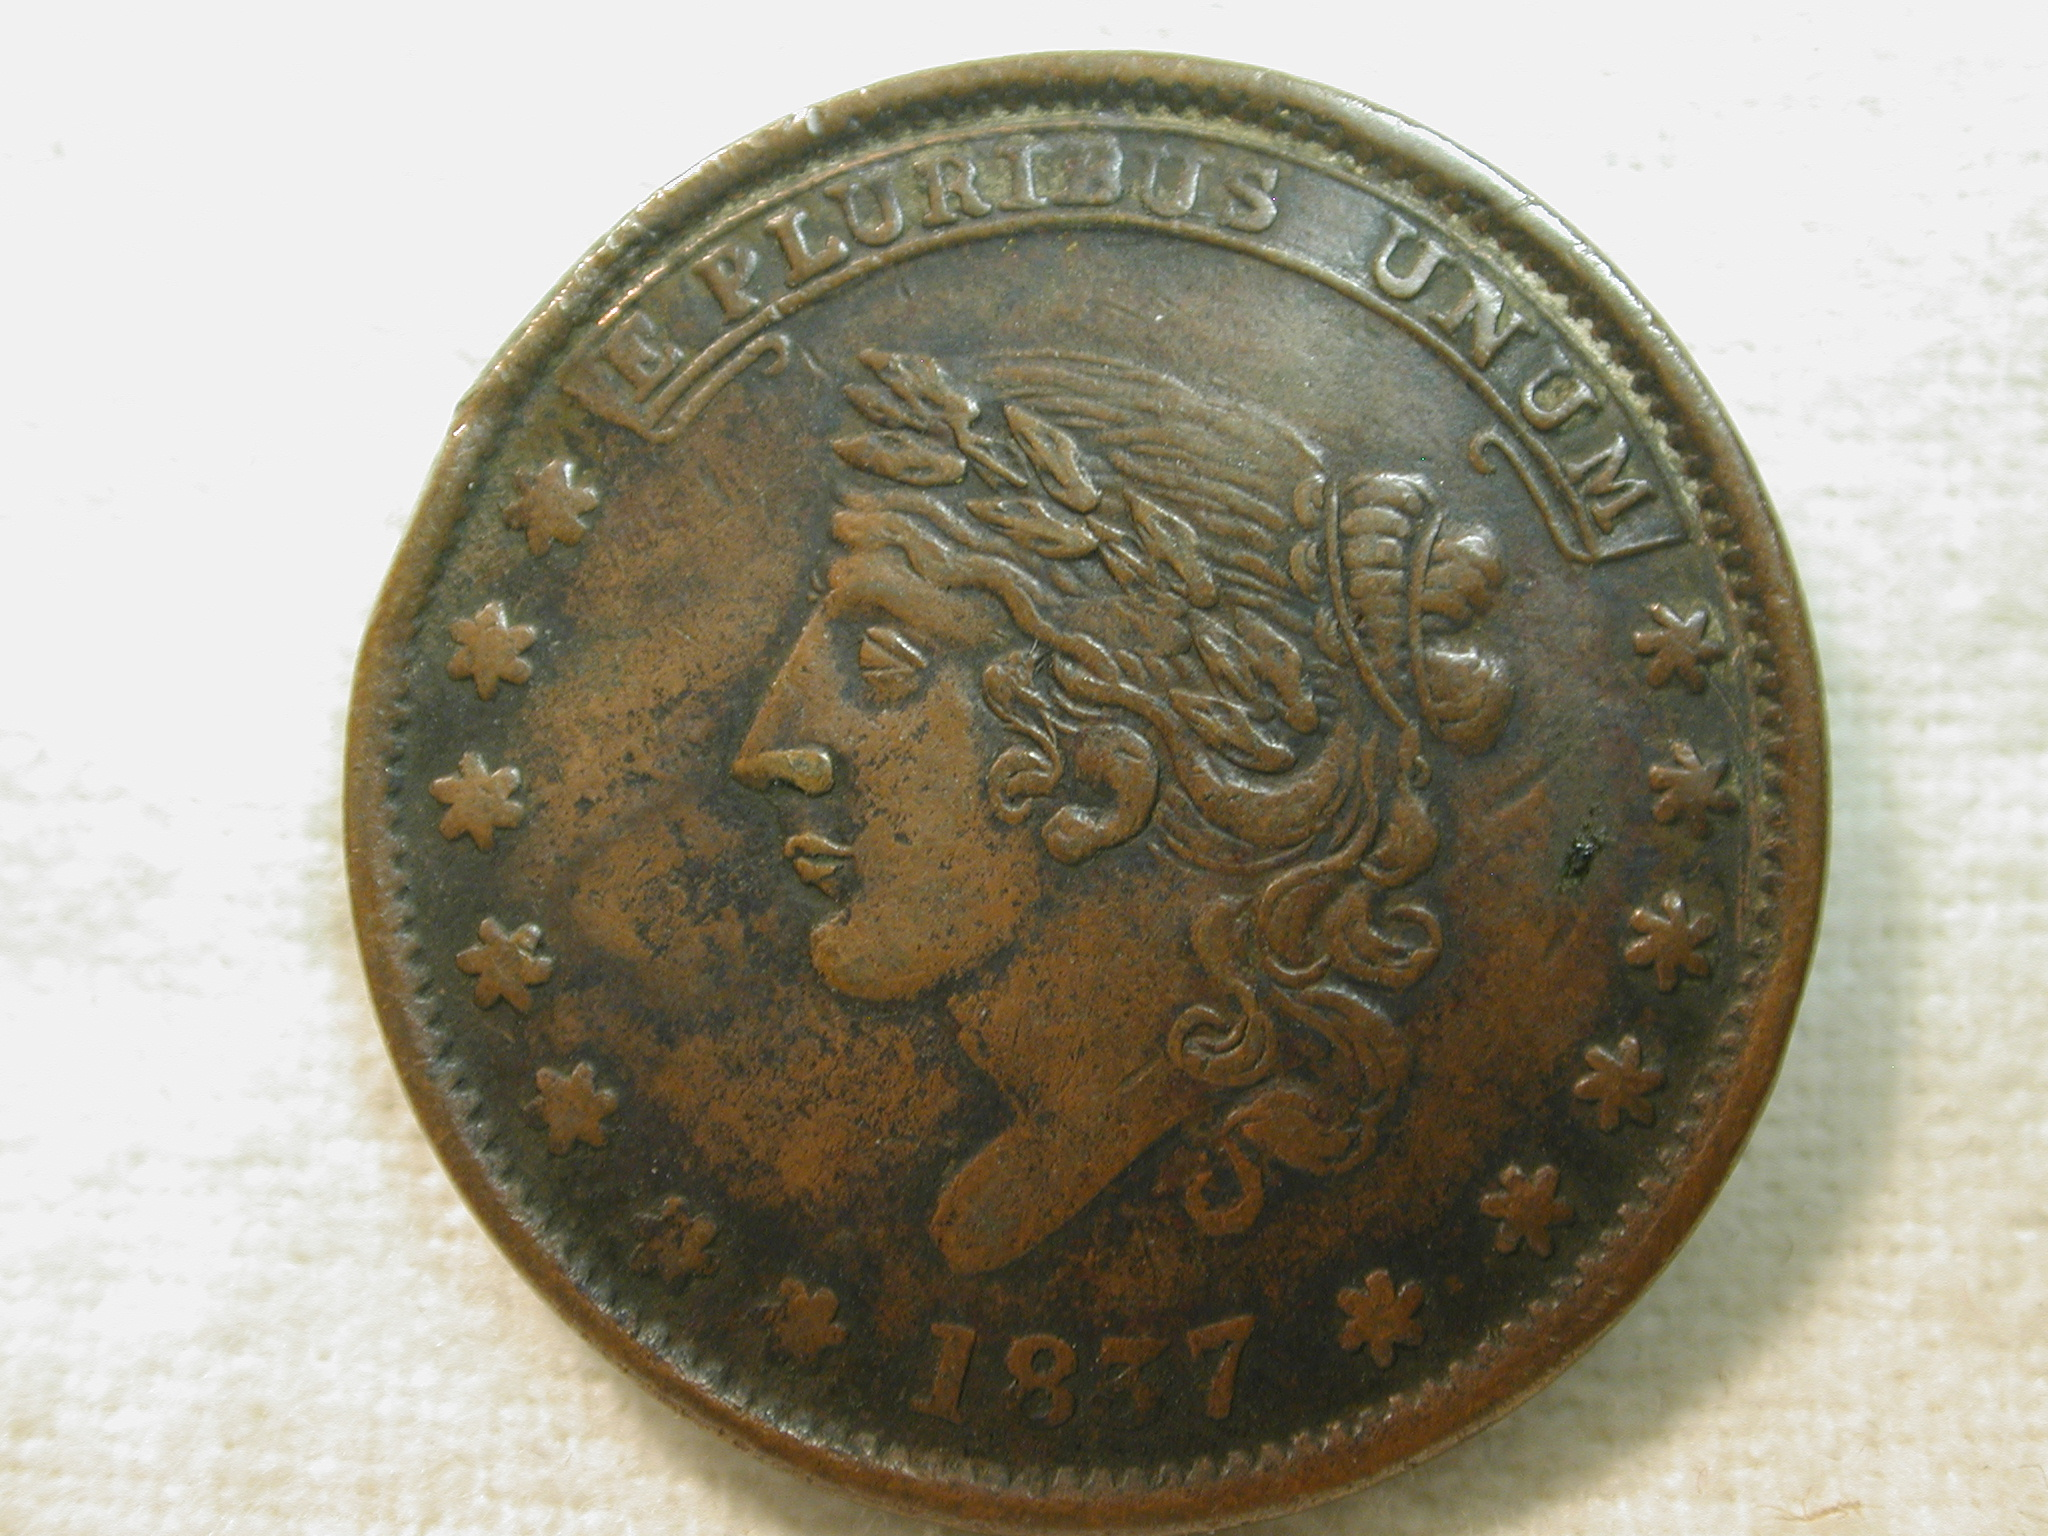 1837 Store Card Token Pre-Civil War Extremely Fine